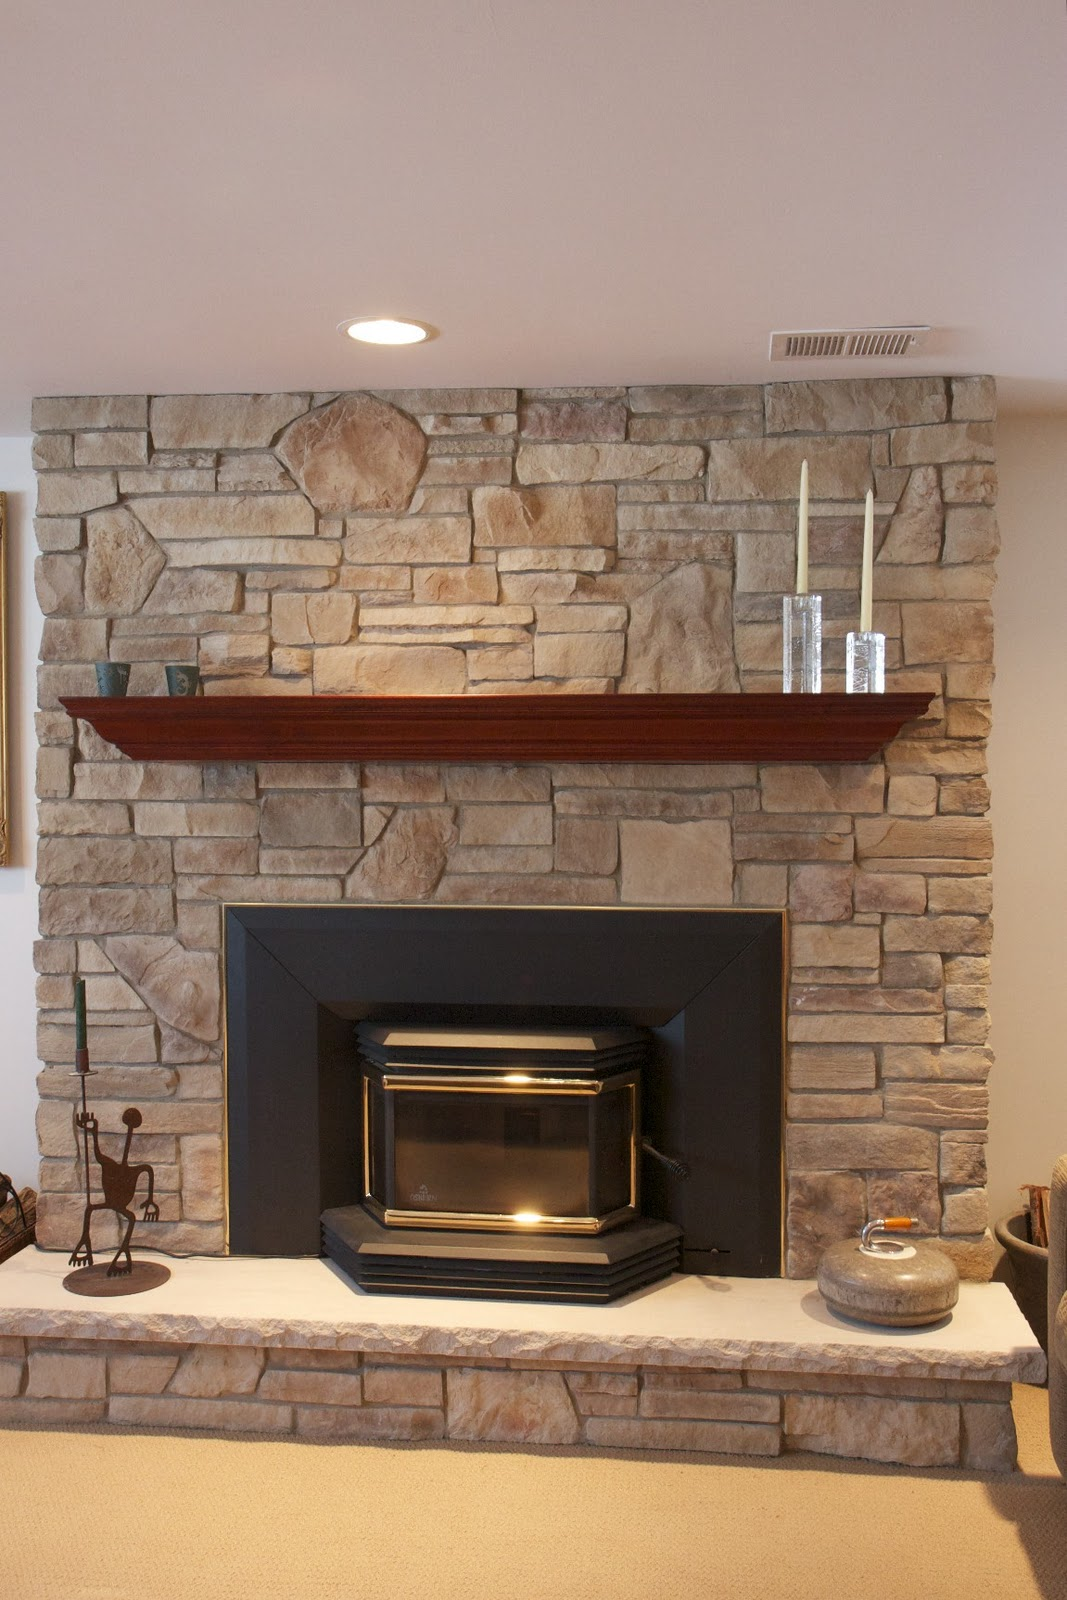 North Star Stone Stone Fireplaces Stone Exteriors Stone Fireplace Picture And Design